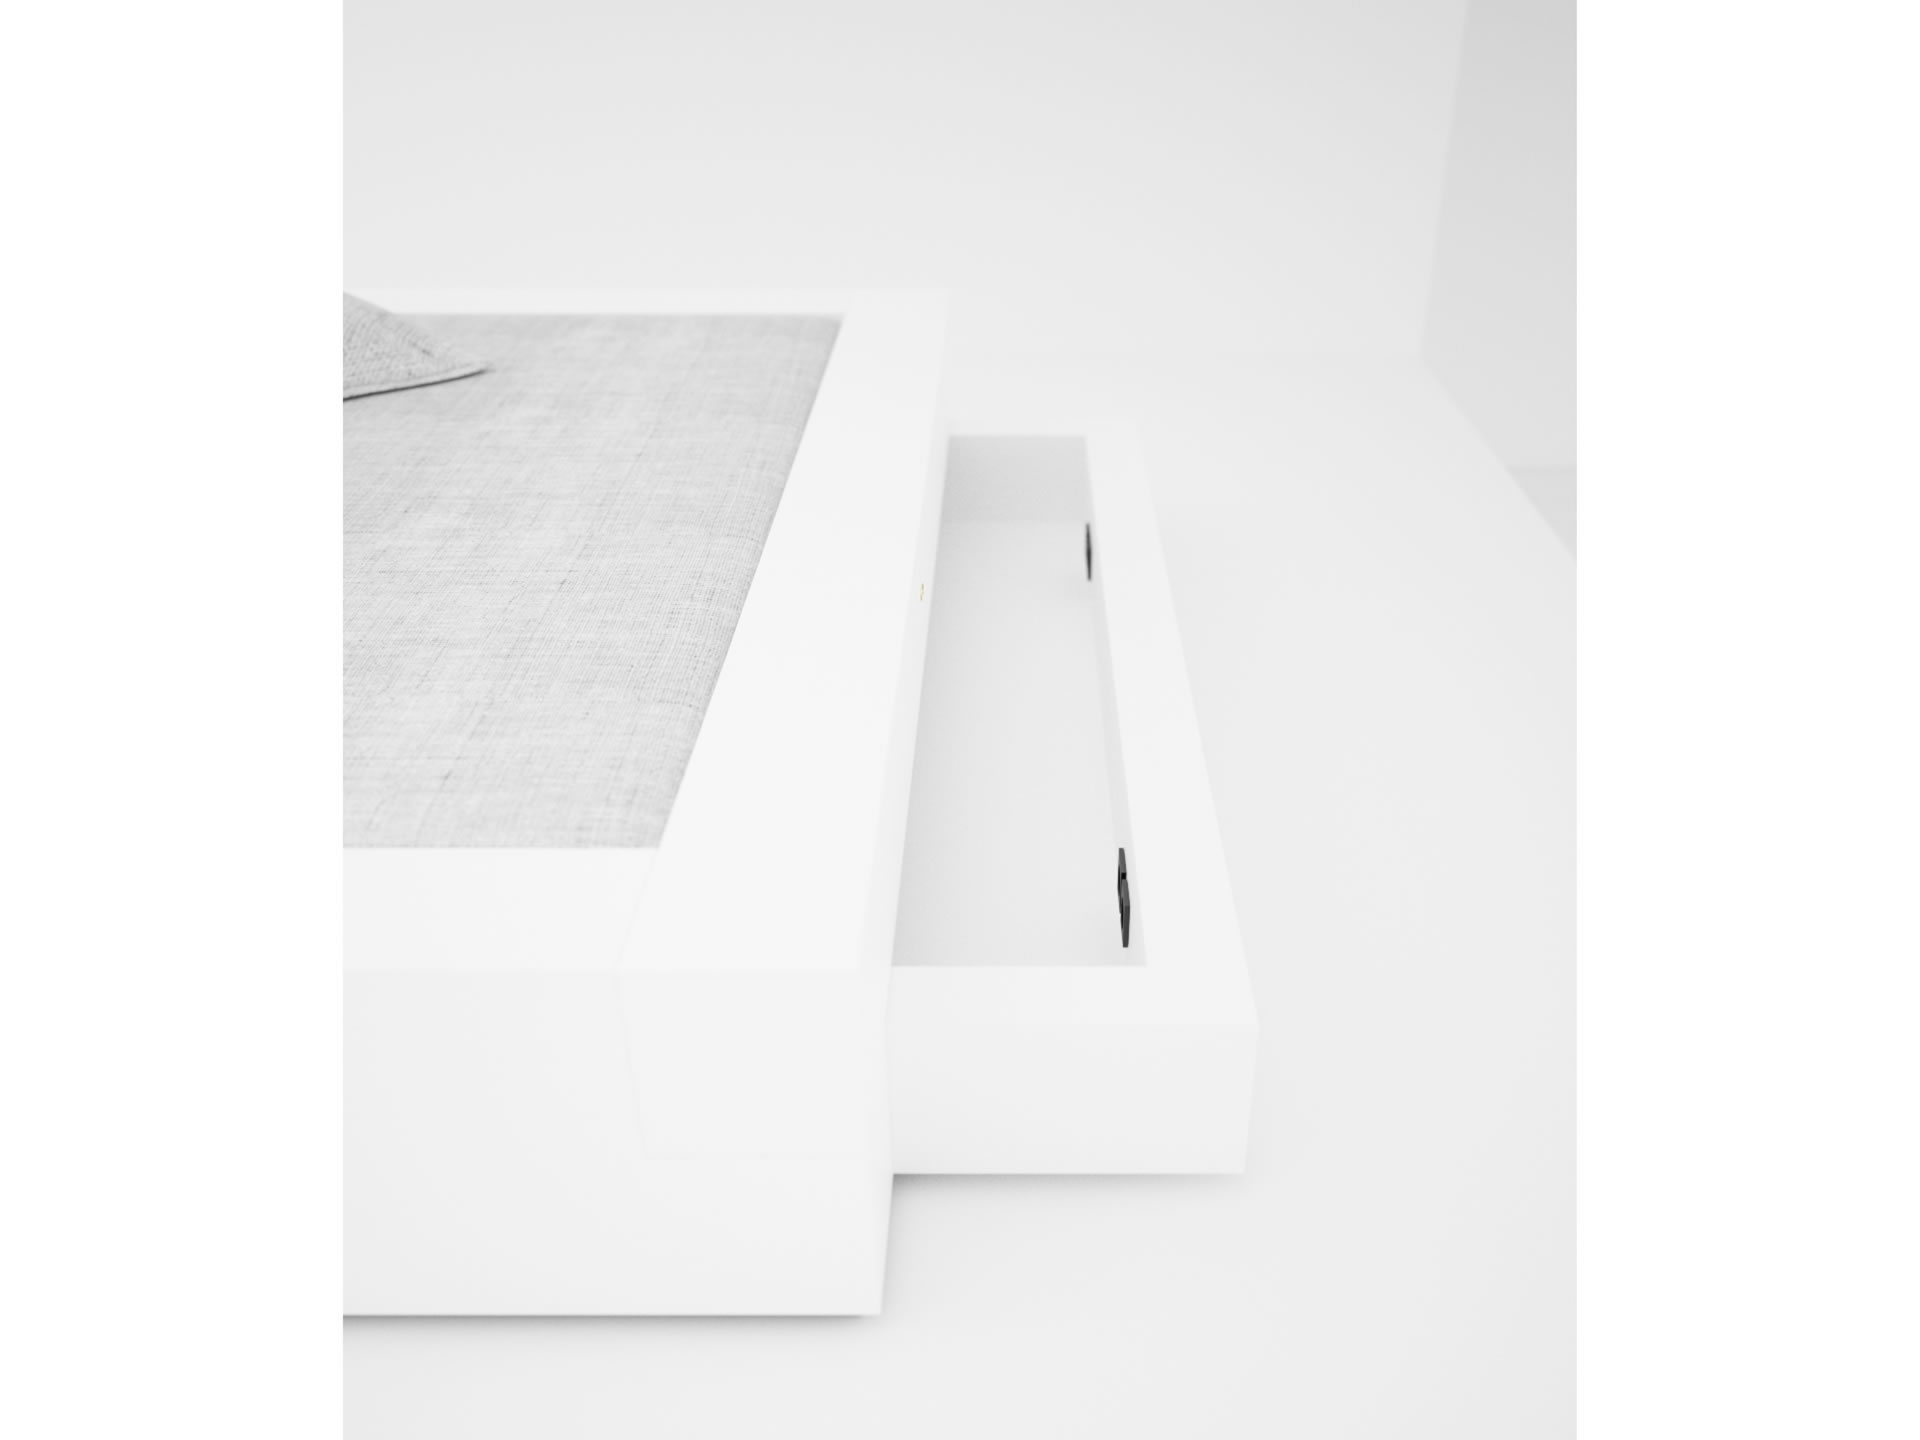 FELIX SCHWAKE BED I I Extraordinary White Bed with Drawers